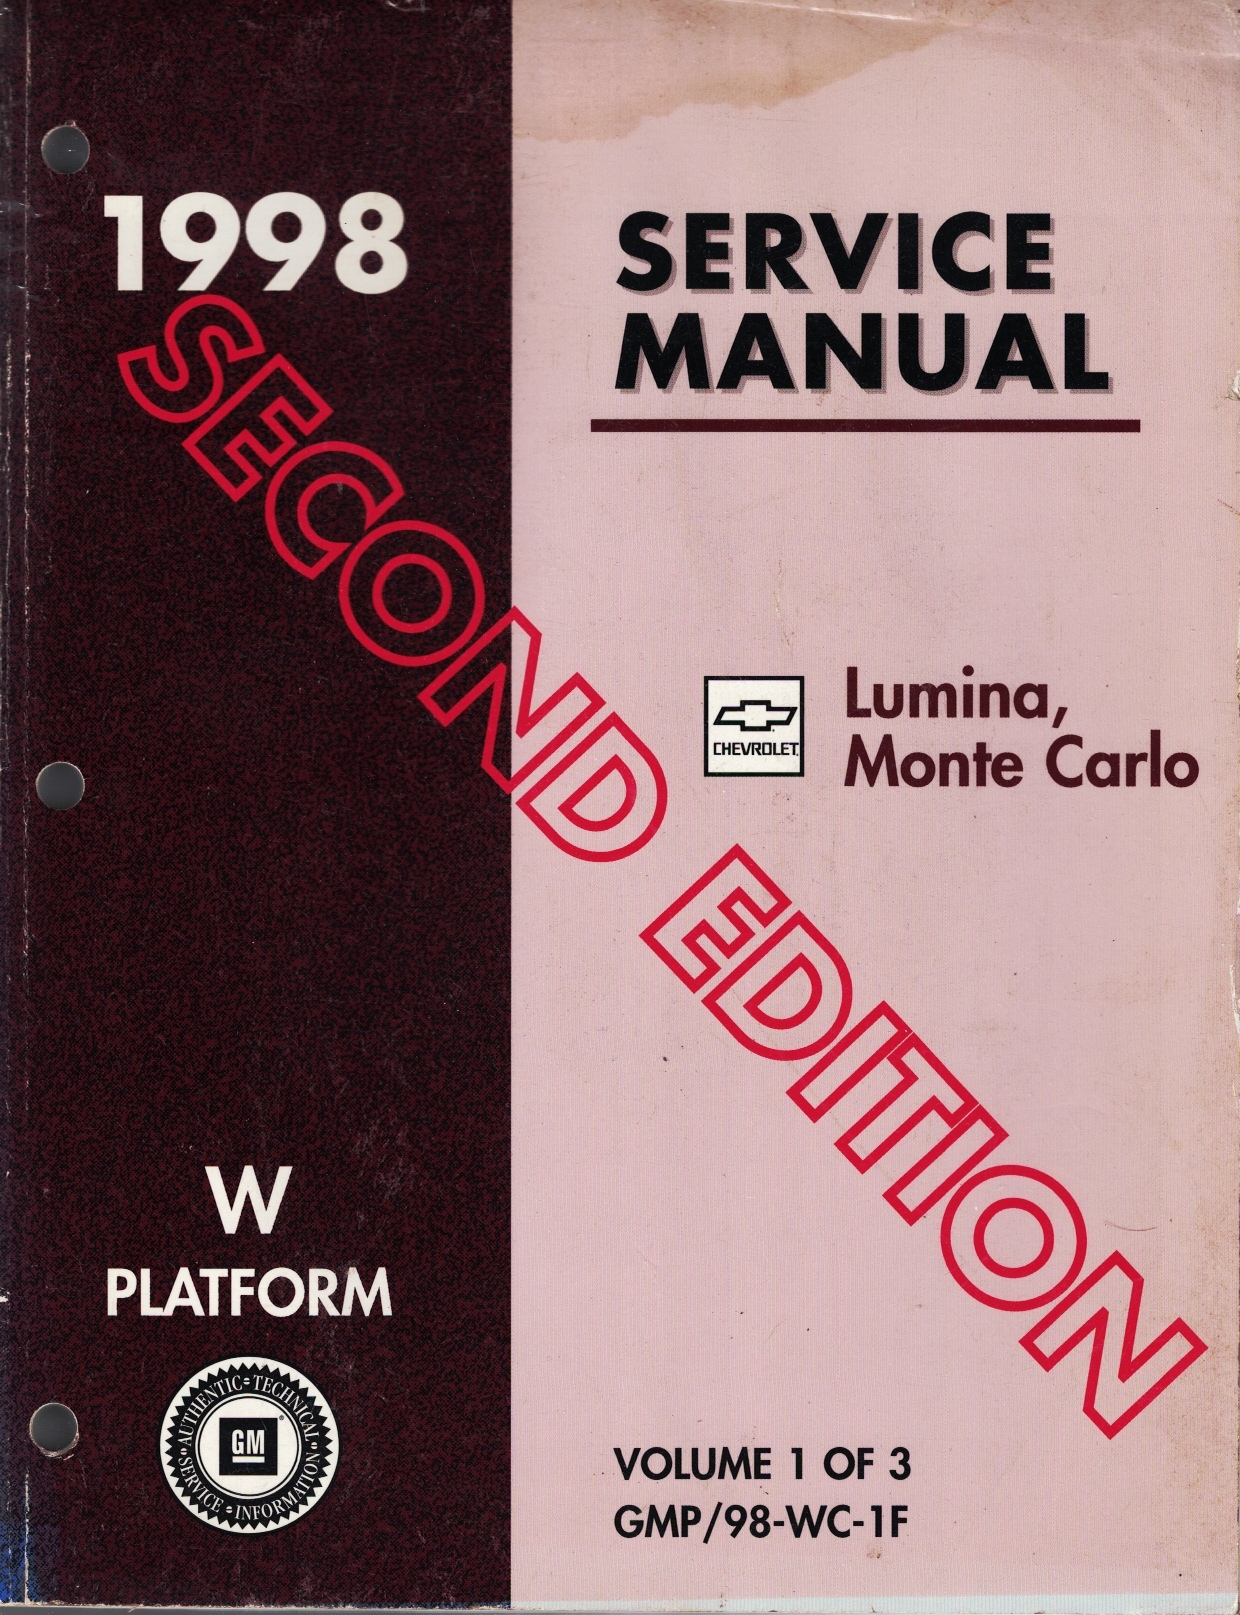 Image for 1998 W-Platform, Chevrolet Lumina and Monte Carlo Service Manual (3 Volume Set) (Second Edition)